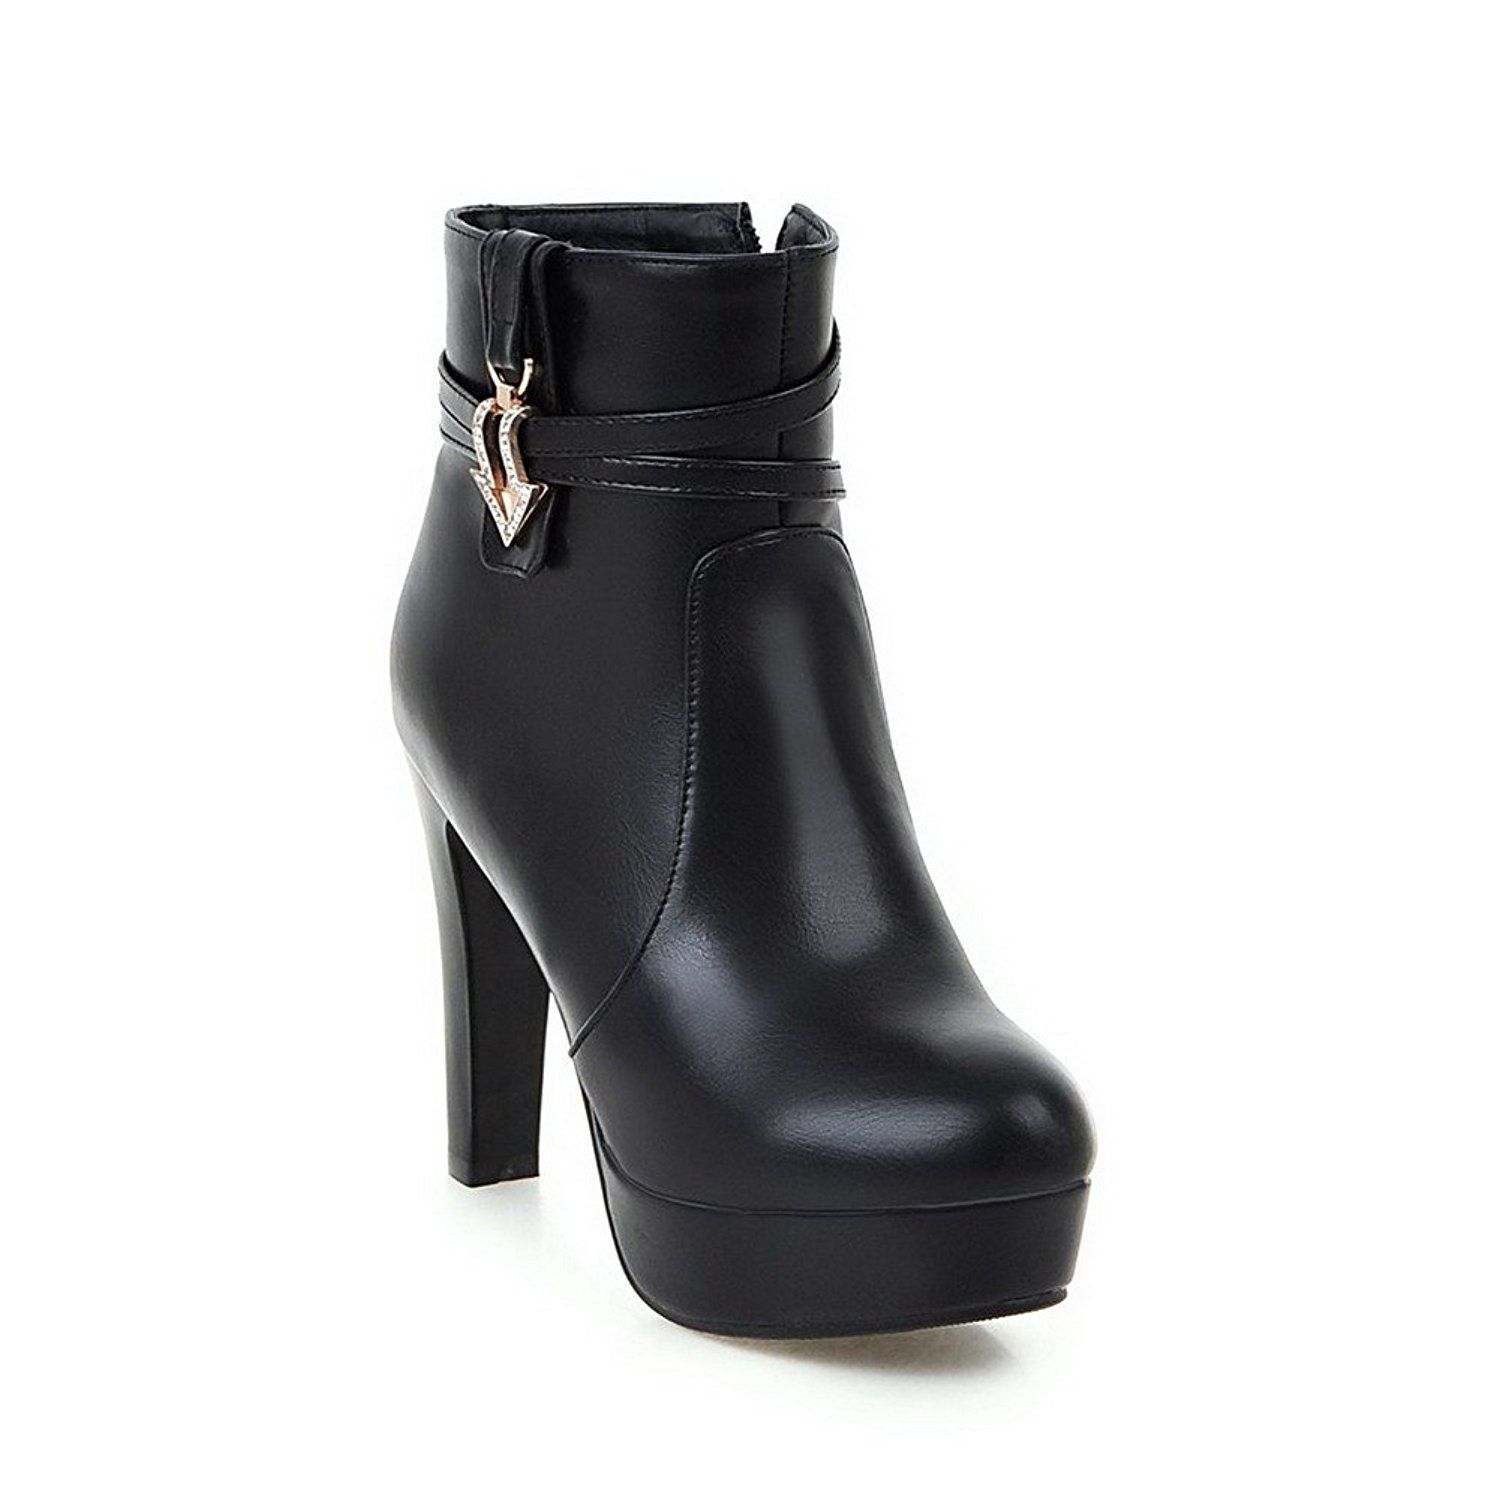 Women's Zipper Round Closed Toe High-Heels PU Low-Top Boots With Metal